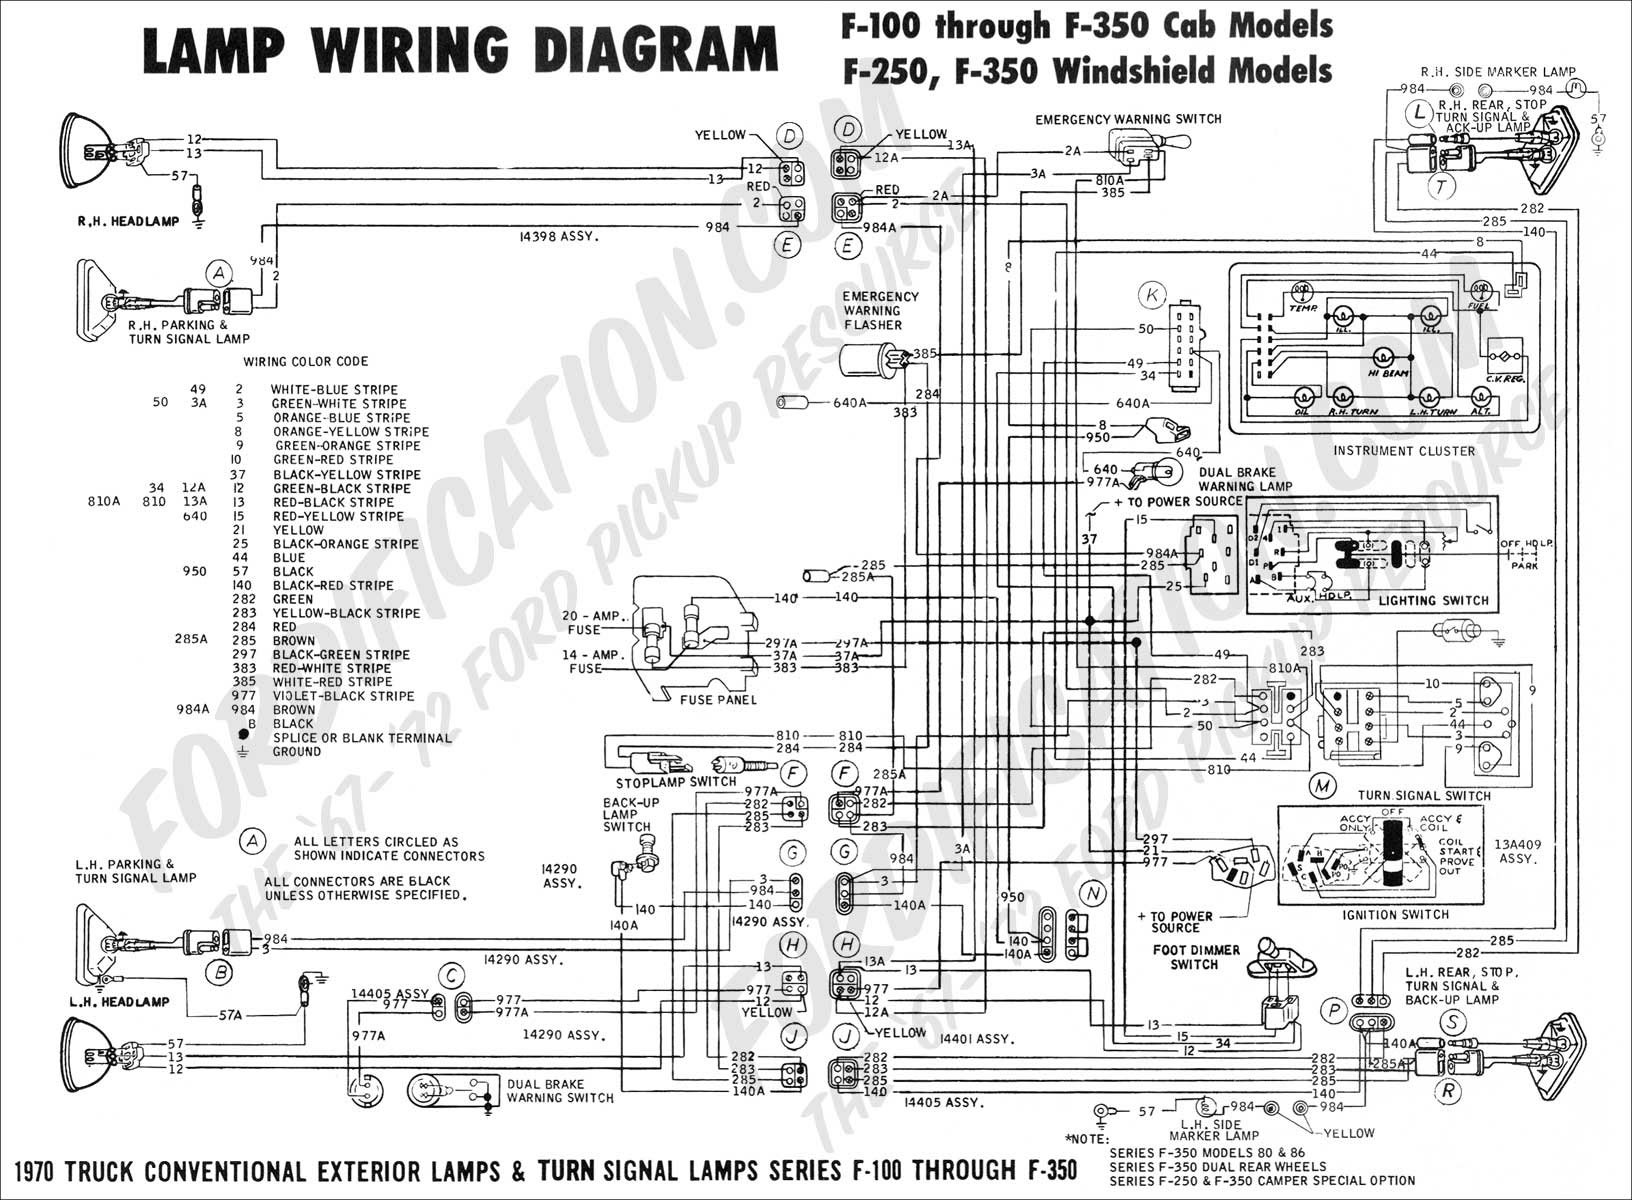 [DIAGRAM_38DE]  DIAGRAM] Mustang 1990 Ford F 150 Wiring Diagram FULL Version HD Quality Wiring  Diagram - NEESCOSCHEMATIC4206.FISIOBENESSERESEGRATE.IT | 1990 Ford F 150 Wiring Harness Diagram |  | fisiobenesseresegrate.it